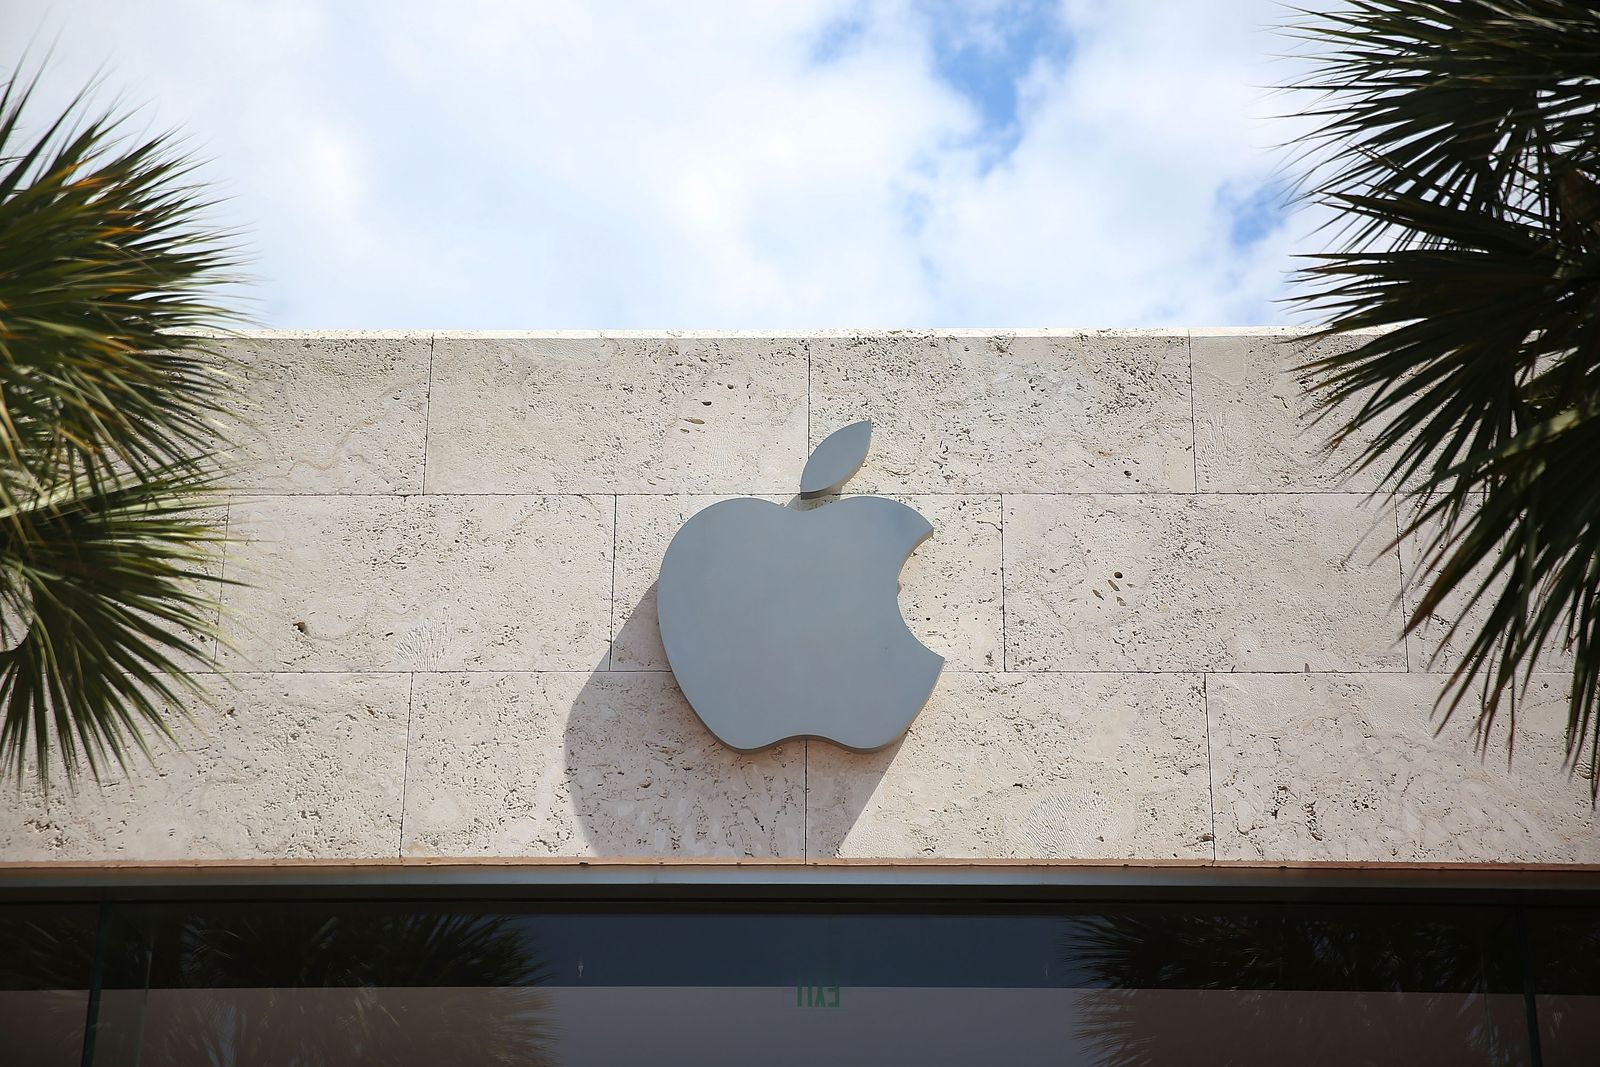 US-APPLE-EXPECTED-TO-REPORT-FIRST-QUARTERLY-REVENUE-DECLINE-IN-A